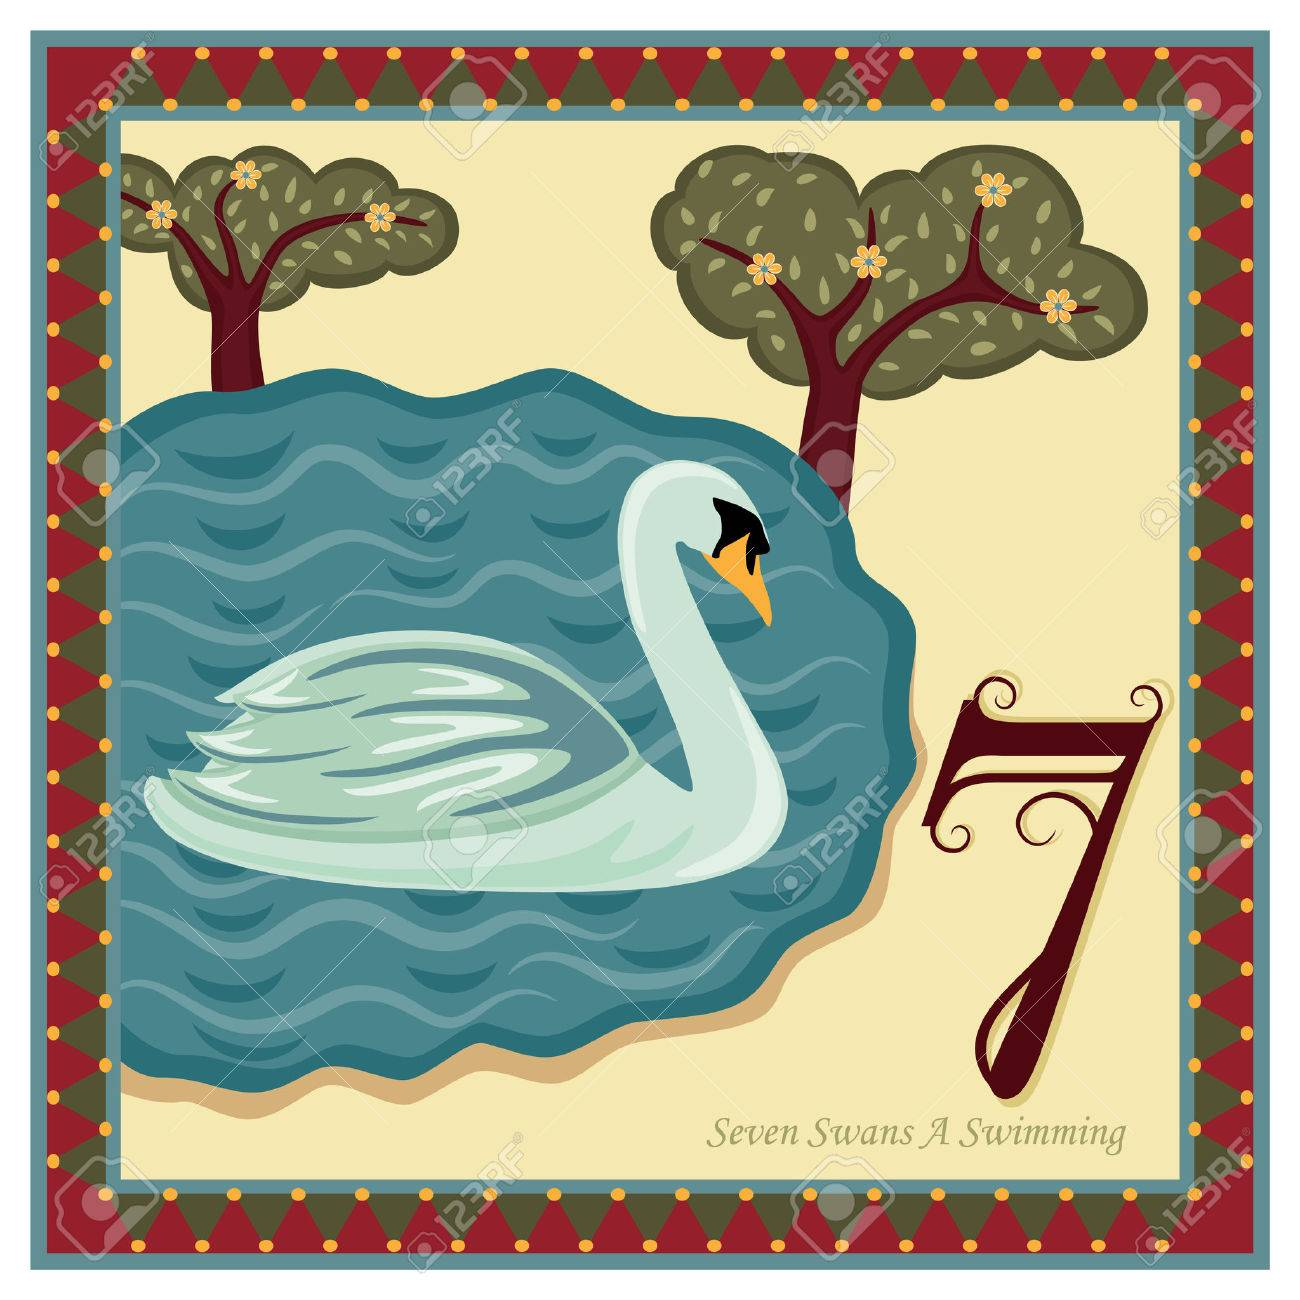 The 12 Days of Christmas - 7th Day - Seven Swans A Swimming Stock Vector - 8188505